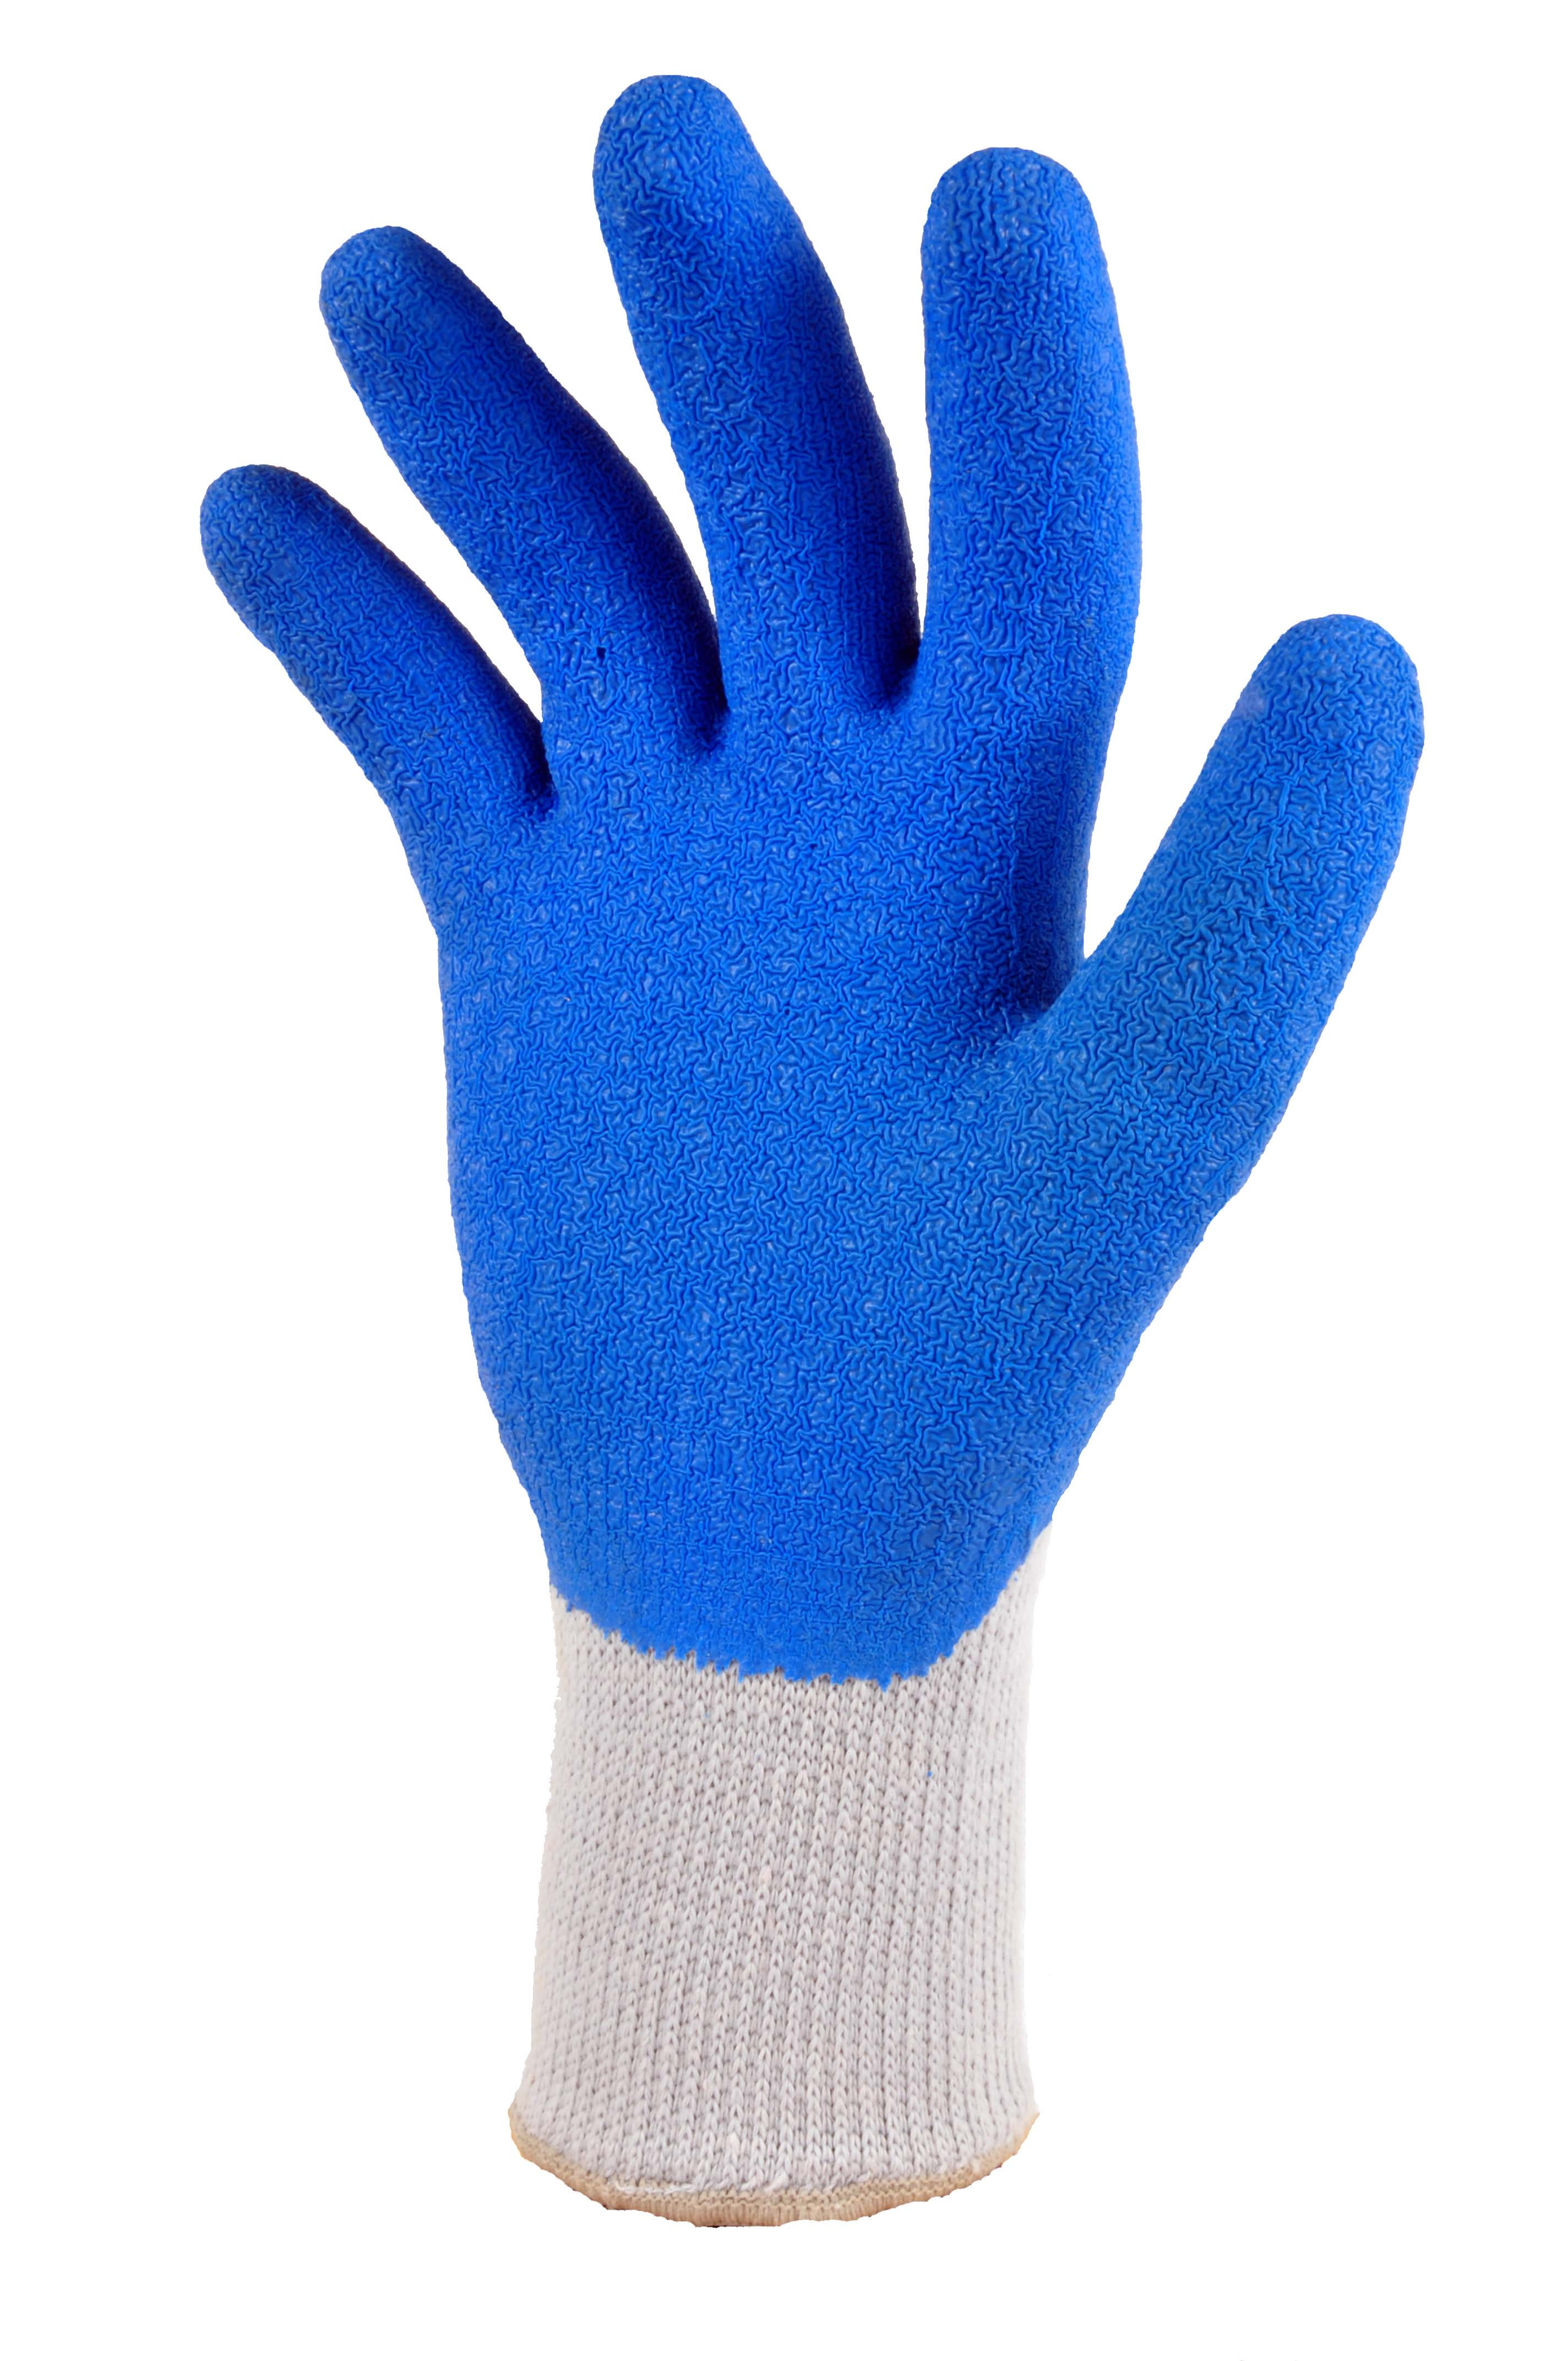 G & F 1630 Heavy Duty Rubber Latex Coated Work Gloves for Construction, Blue, Men\\'s... by G & F